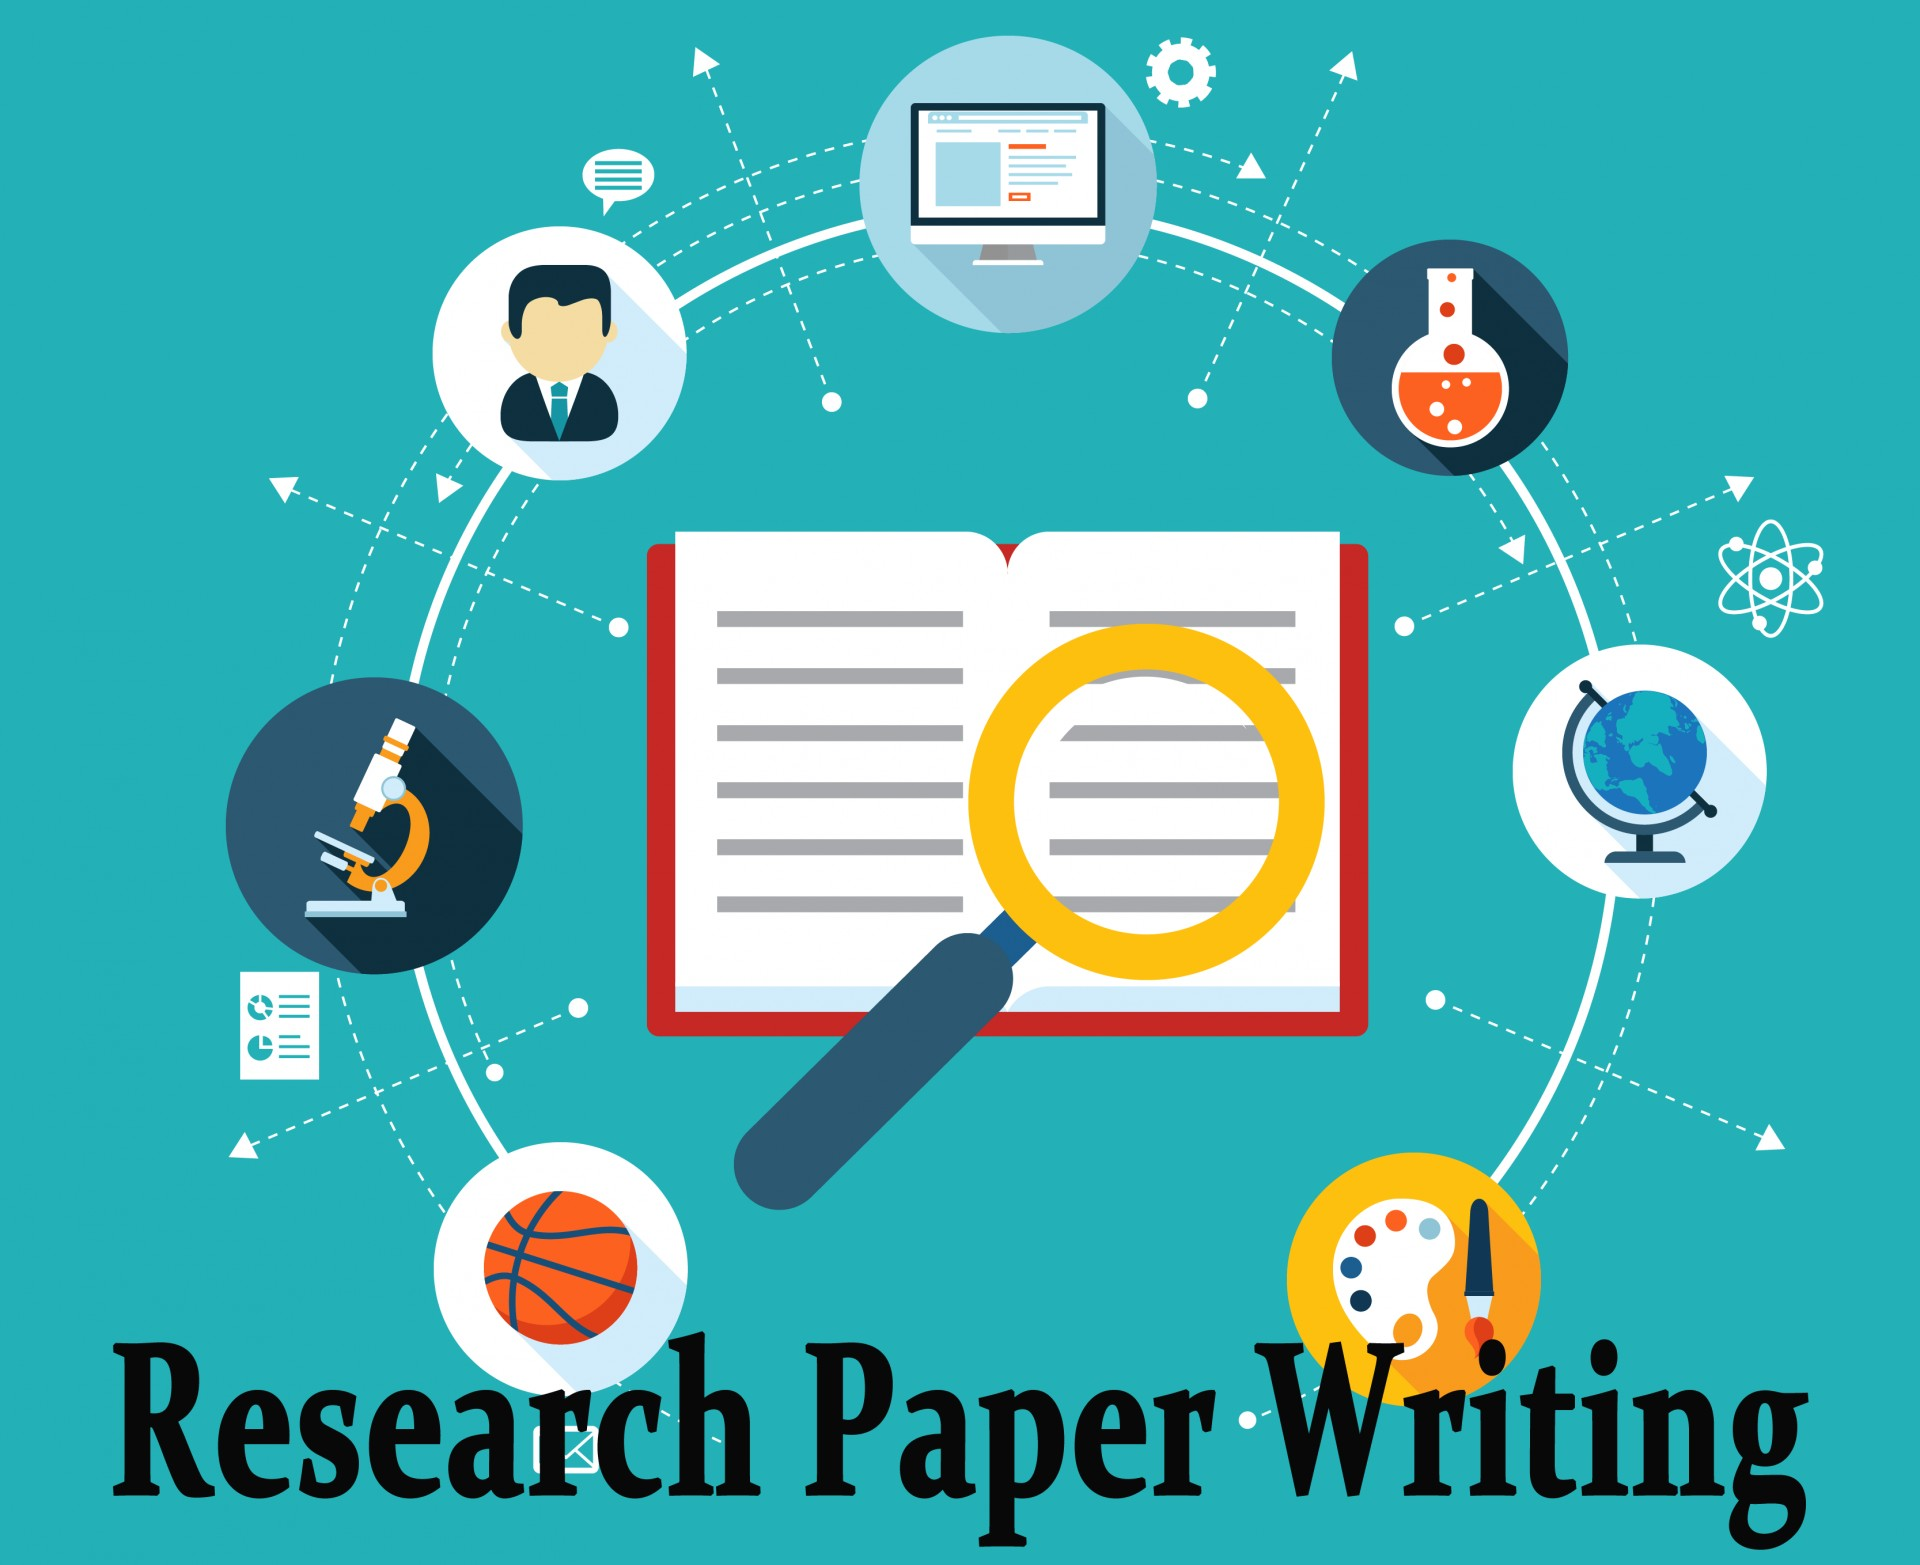 008 Writing Of Research Paper 503 Effective Fascinating Sample Introduction Steps A Pdf 1920